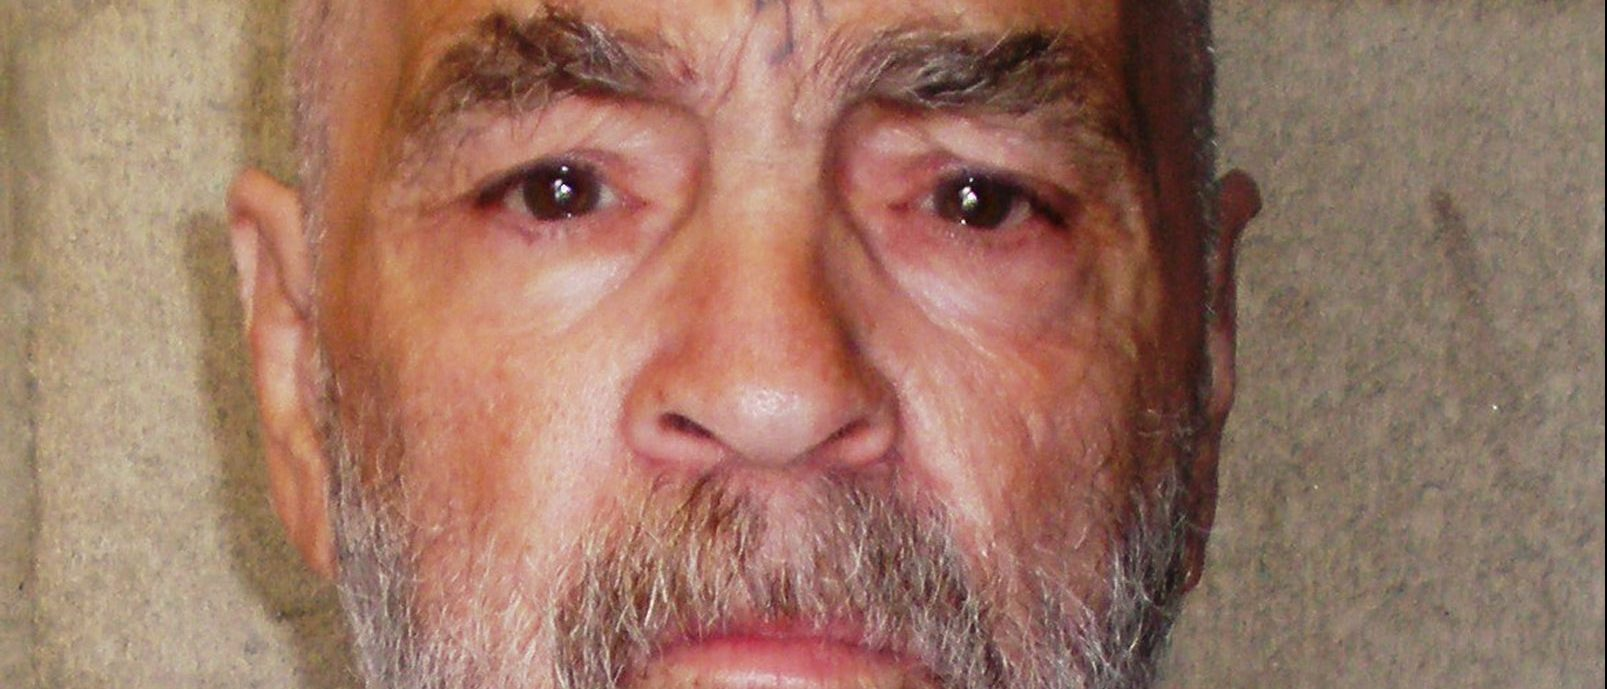 "CORCORAN STATE PRISON - MARCH 18:  In this handout photo from the California Department of Corrections and Rehabilitation, Charles Manson, 74,  is seen March 18, 2009 at Corcoran State Prison, California. Manson is serving a life sentence for conspiring to murder seven people during the ""Manson family"" killings in 1969. The picture was taken as a regular update of the prison's files.  (Photo by  California Department of Corrections and Rehabilitation via Getty Images)"